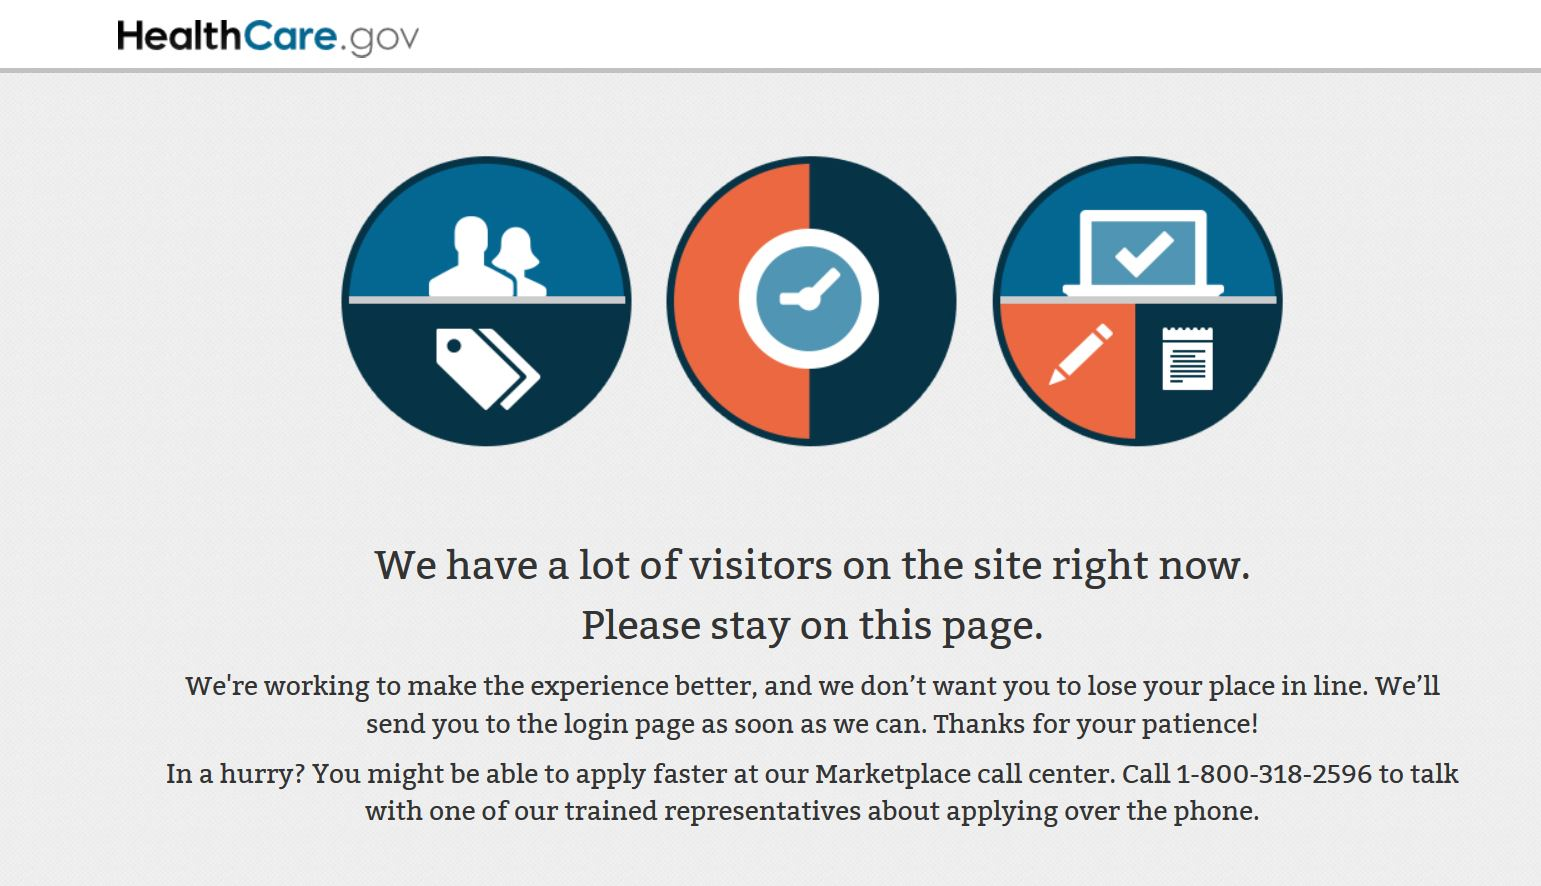 The healthcare.gov site on Wednesday morning